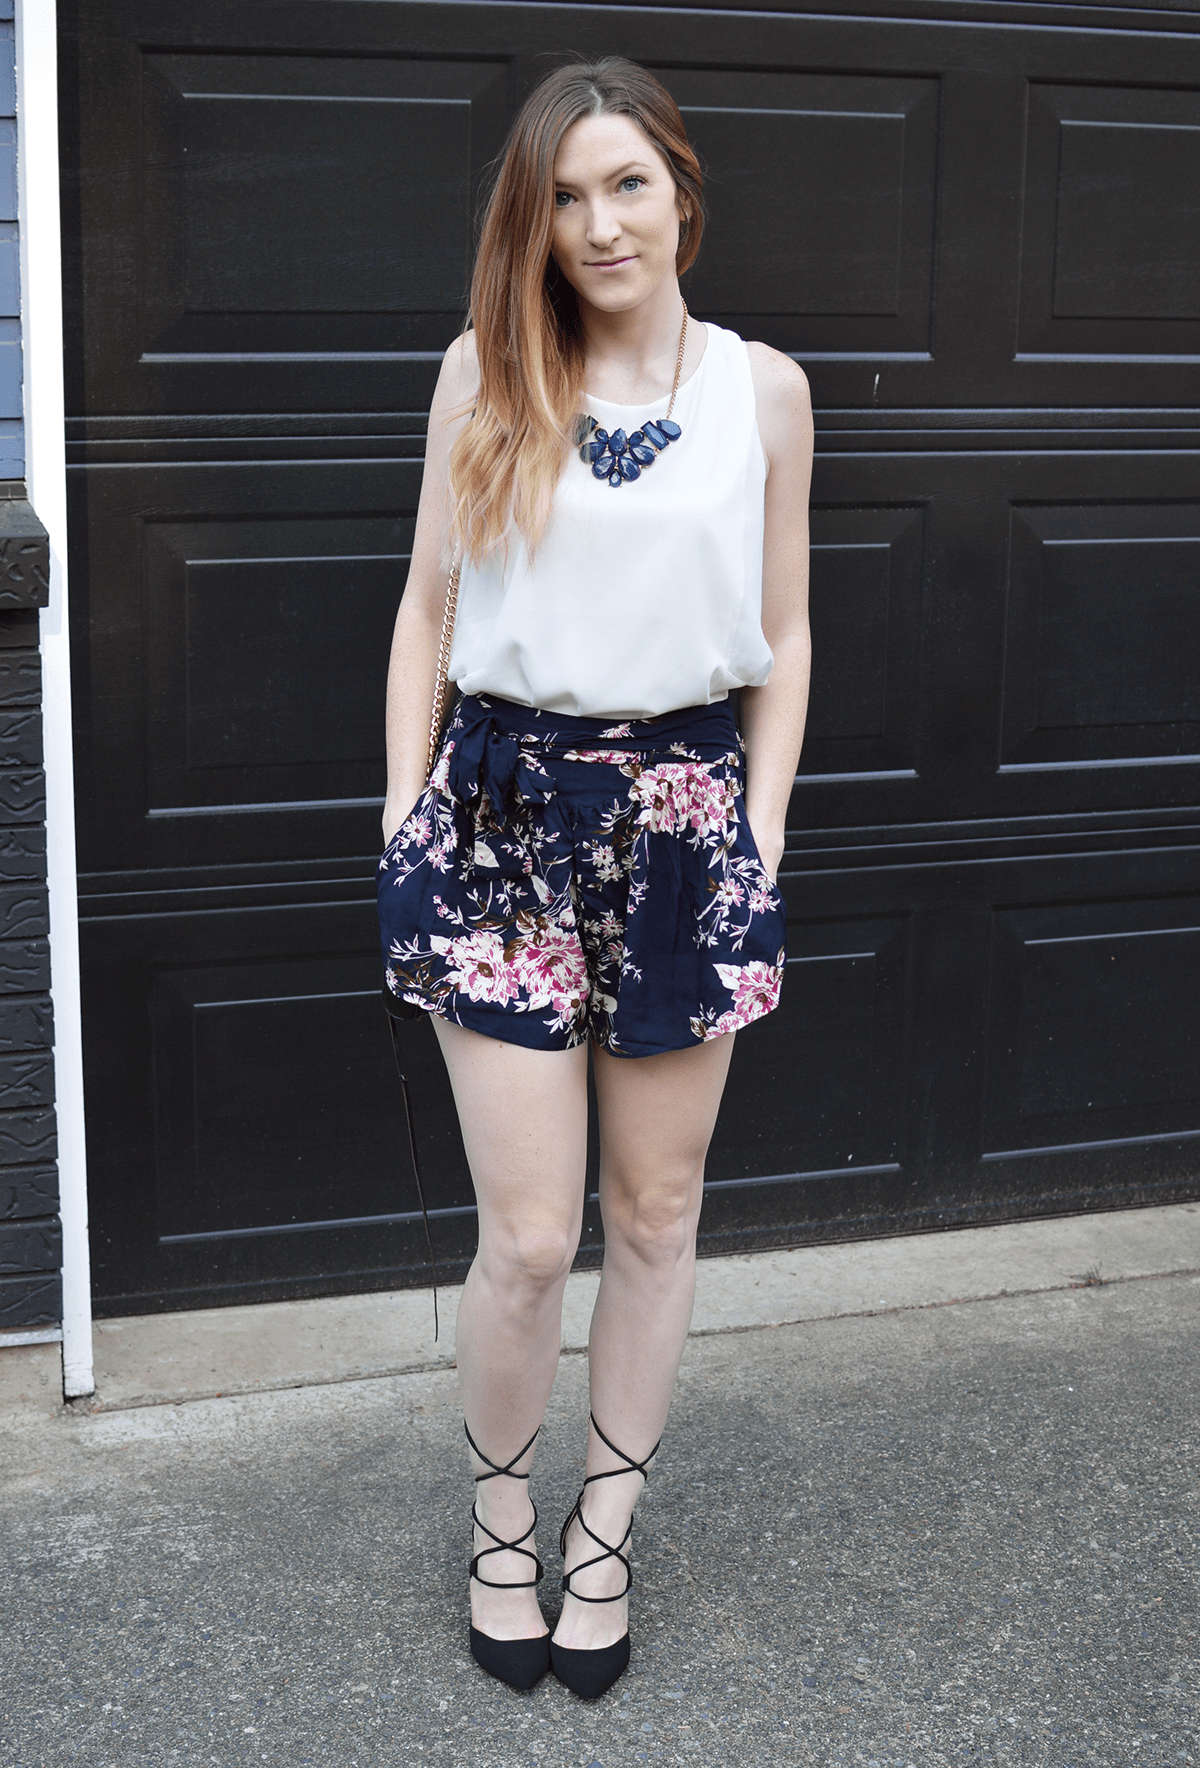 Shorts and heels are one of my favorite comfy + chic combos! | oliveandivyblog.com